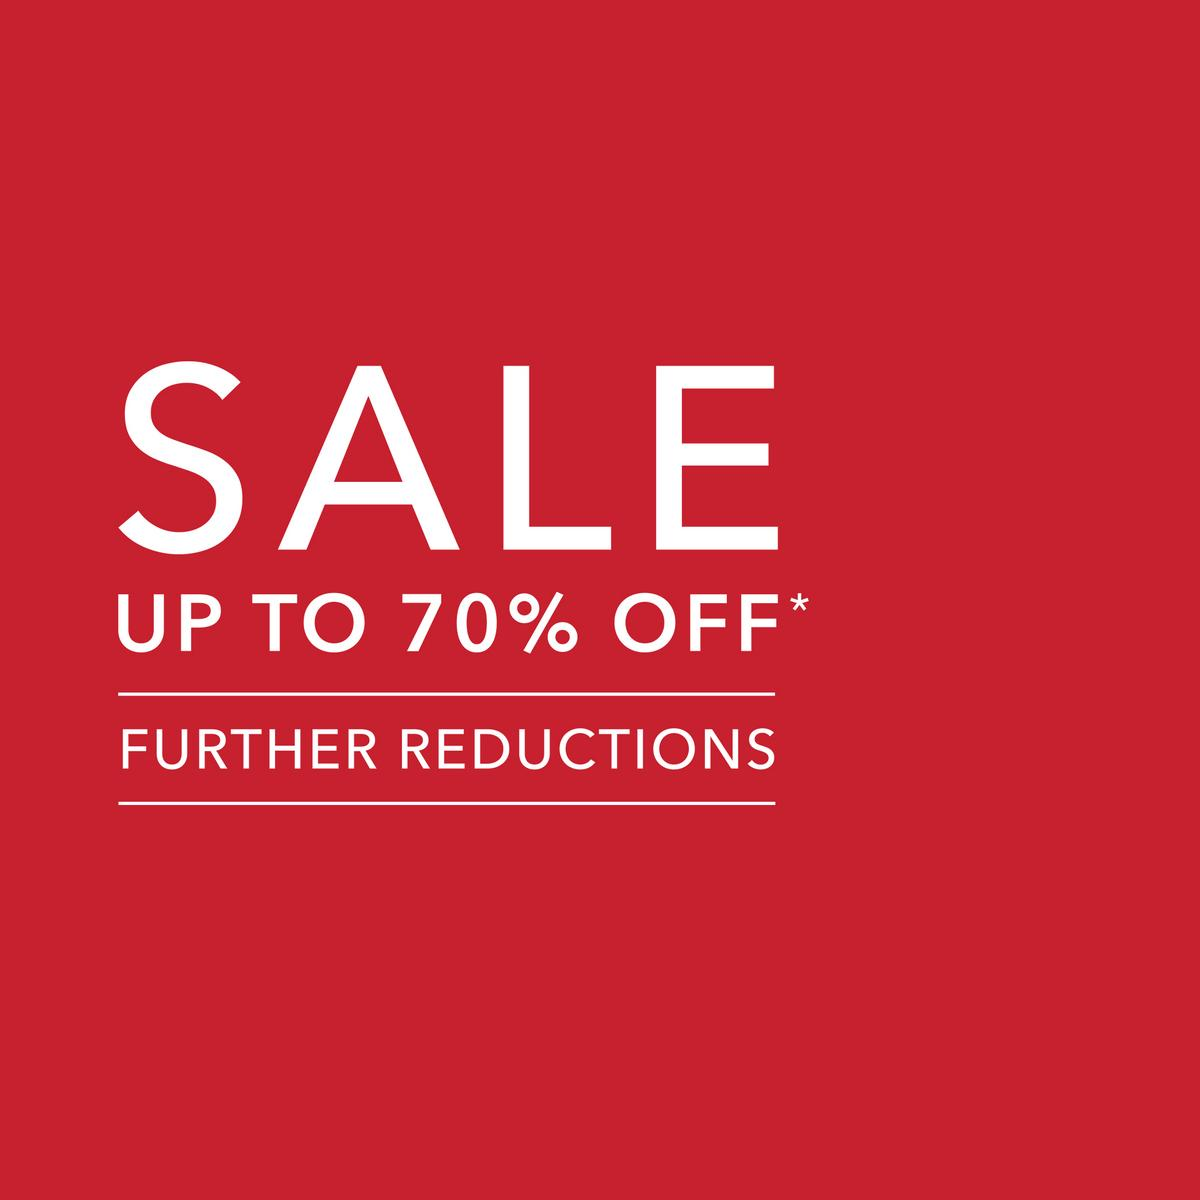 sale further reductions graphic